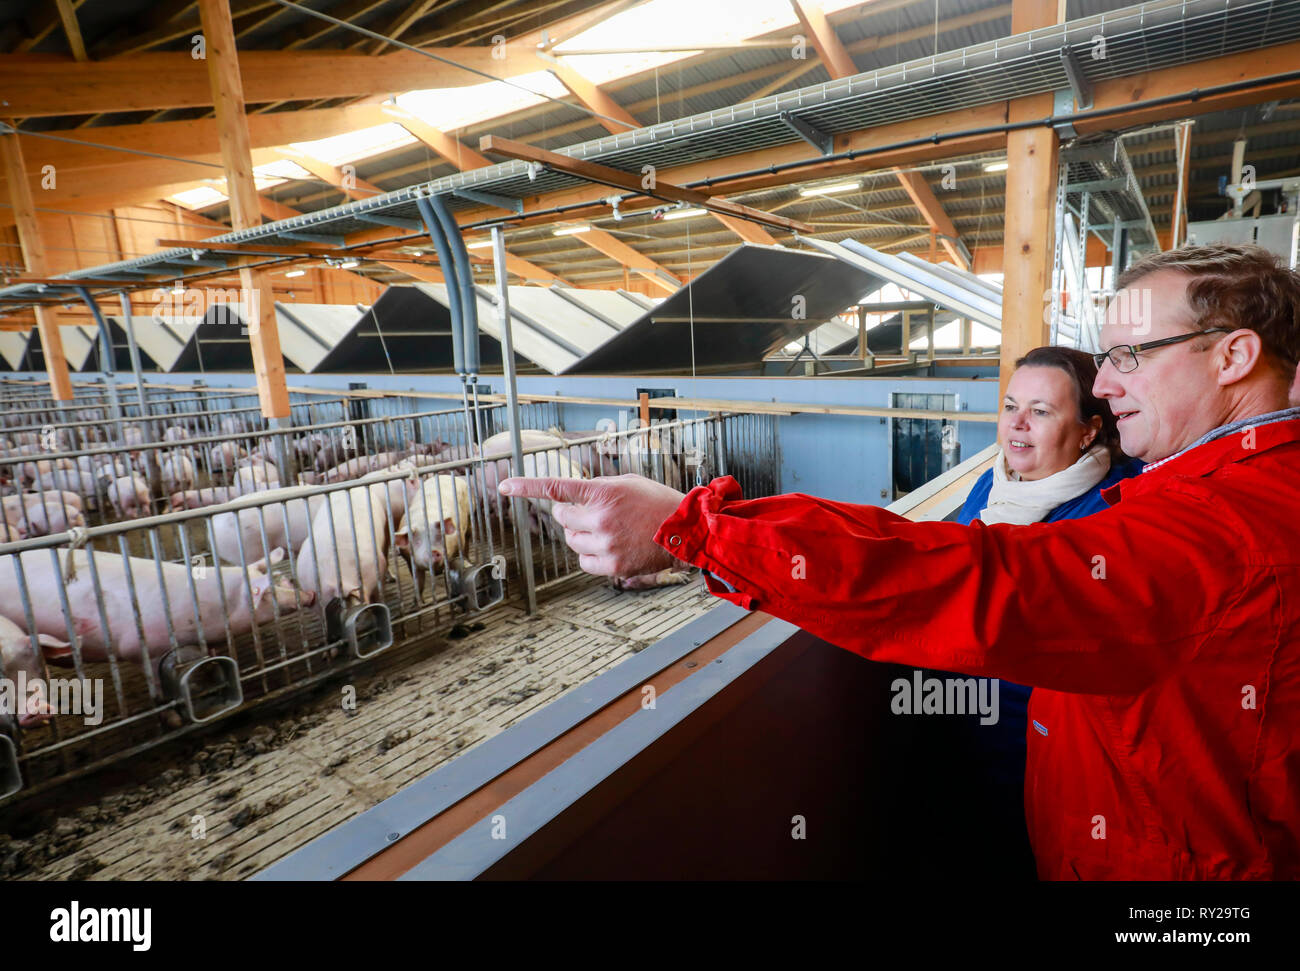 Ense, North Rhine-Westphalia, Germany - Ursula Heinen-Esser, Minister for the Environment, Agriculture, Nature and Consumer Protection of the State of - Stock Image